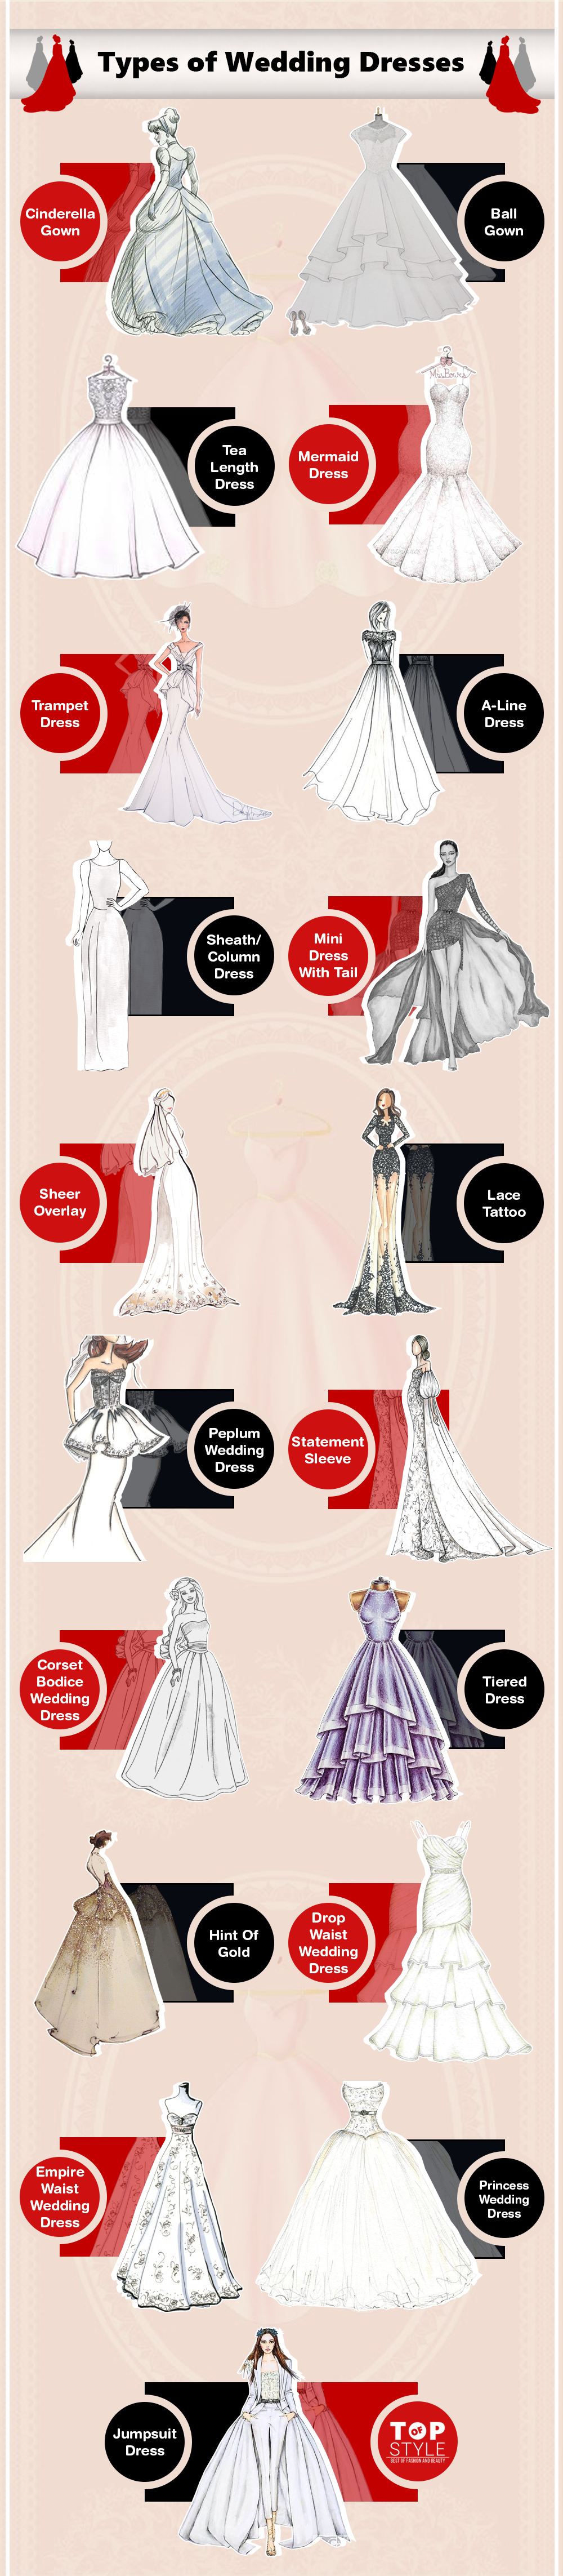 19 Different Types Of Wedding Dresses Every Bridal Need To Know Topofstyle Blog